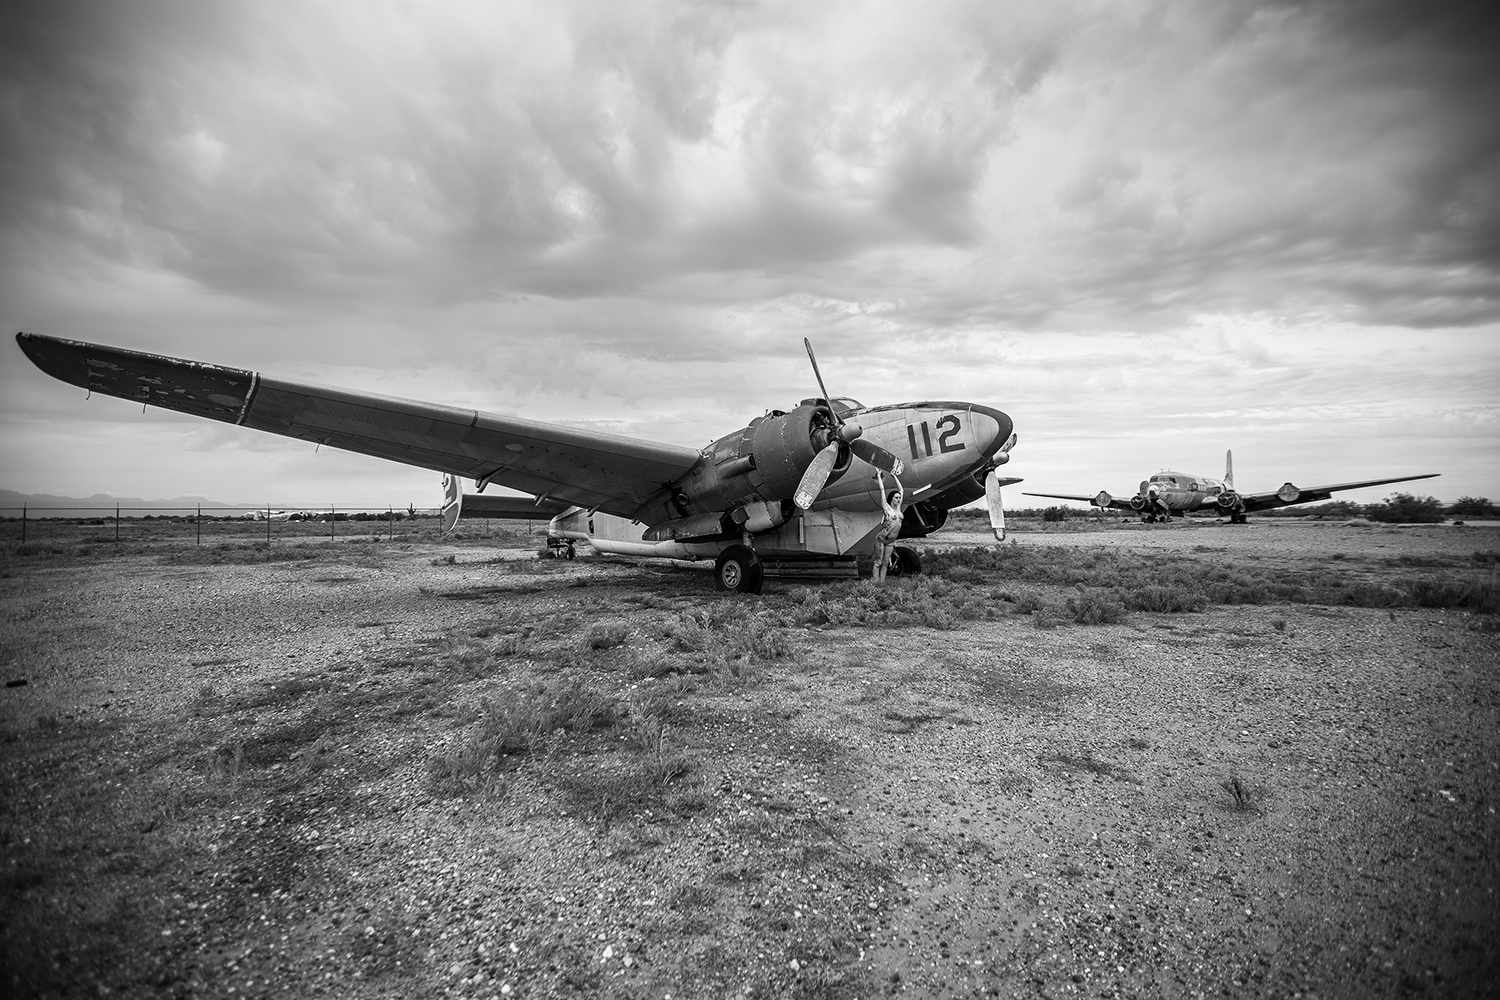 Brian Cattelle, BARE USA - Gila River Memorial Airport, AZ - nude by plane